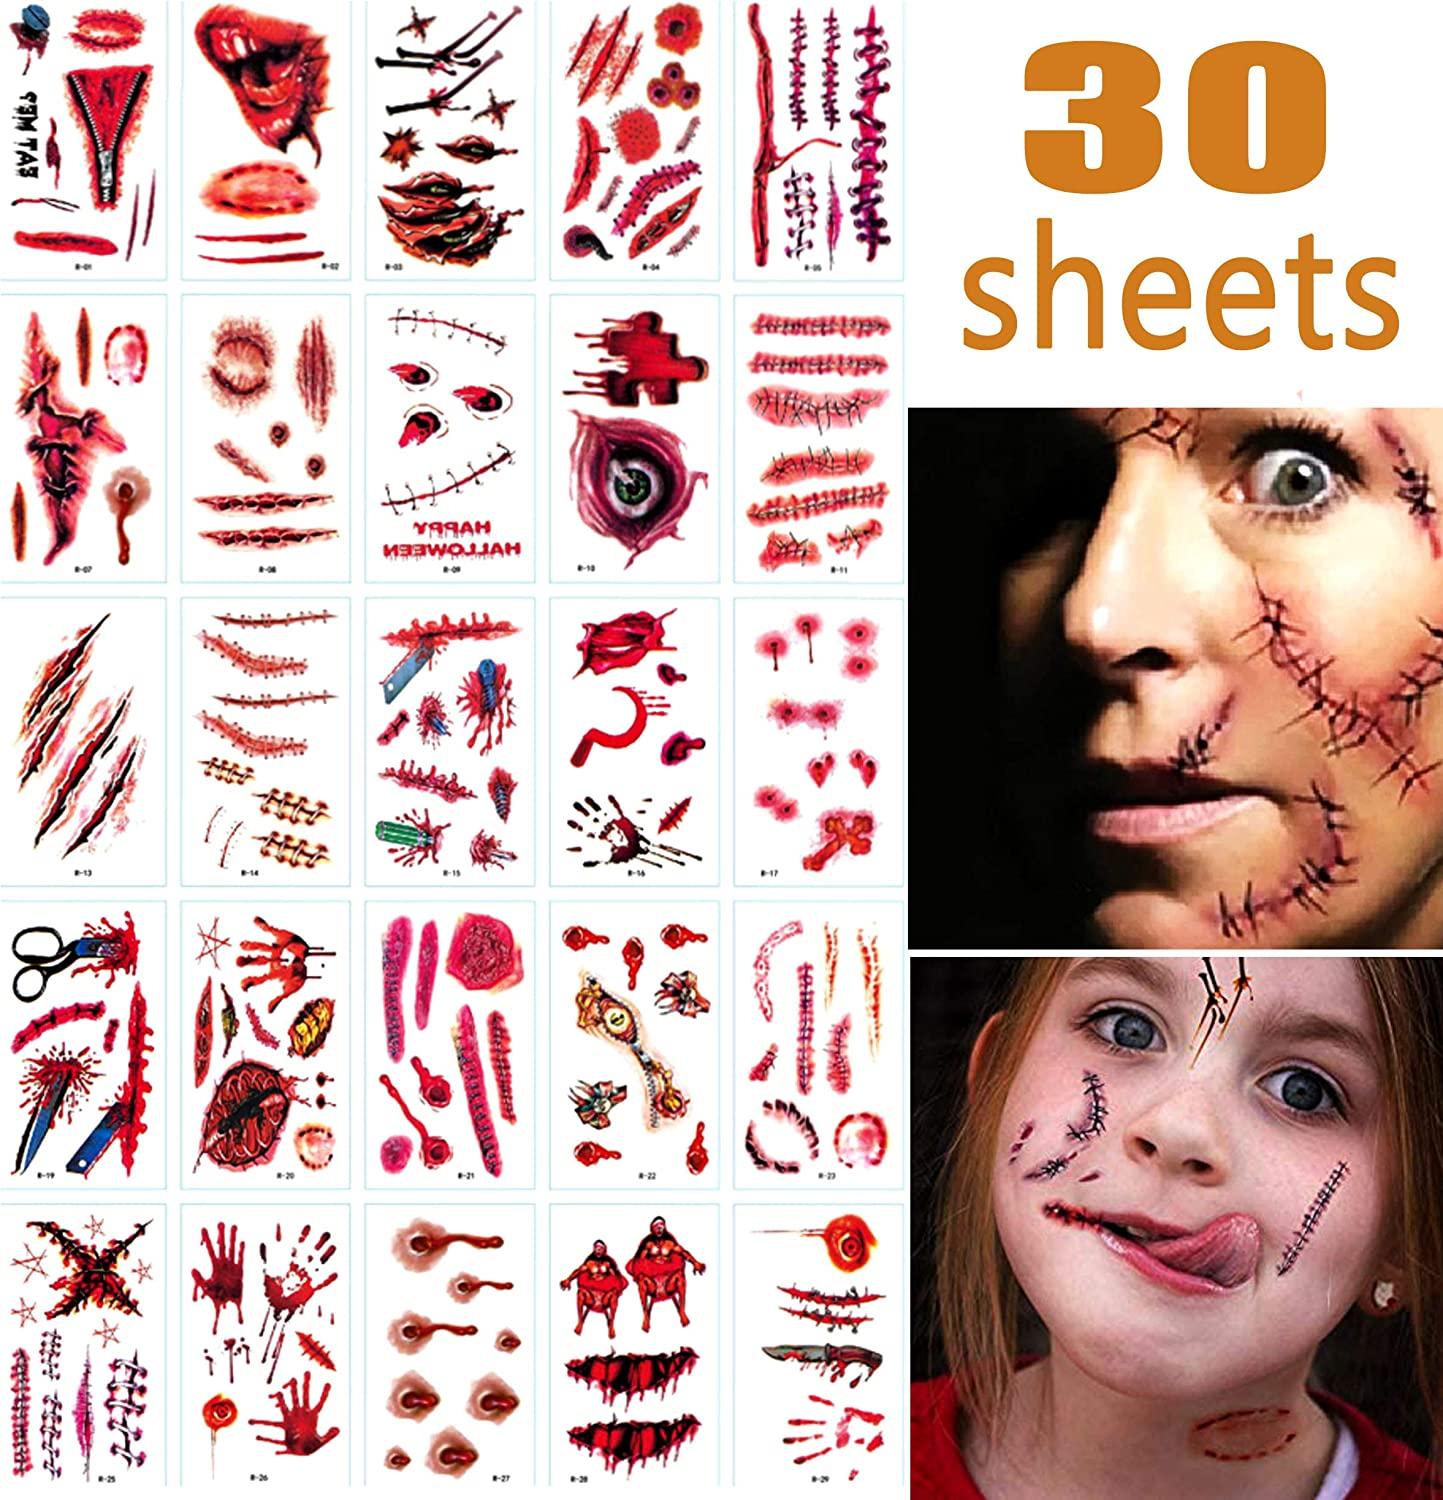 Halloween Face Fake Scar Tattoos,30 Sheet Halloween Zombie Makeup Kit Decoration for Kids,Vampire Bite Wounds Cuts Waterproof Fake Blood Tattoo for Party Supplies Cosplay Props